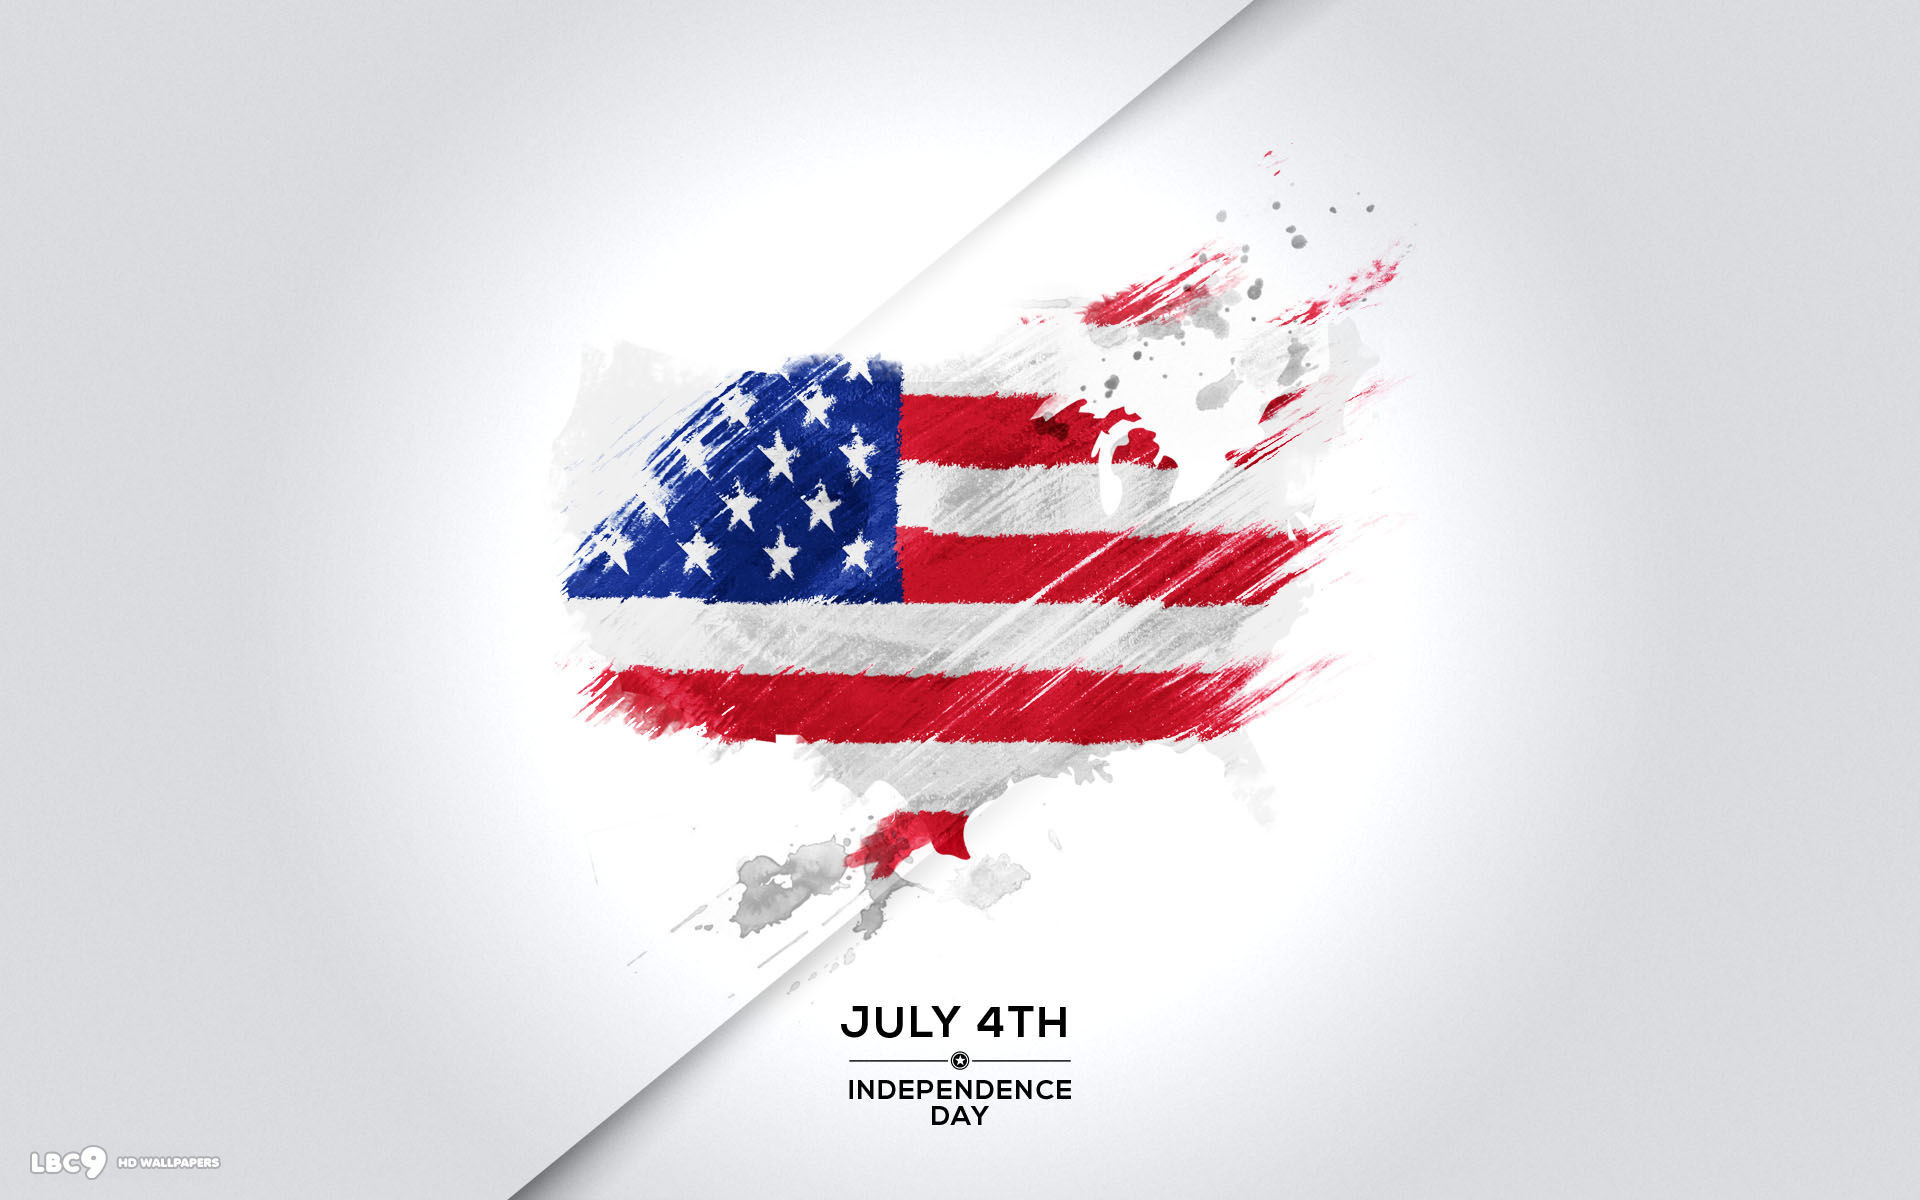 july 4th independence day usa flag map abstract holiday desktop wallpaper